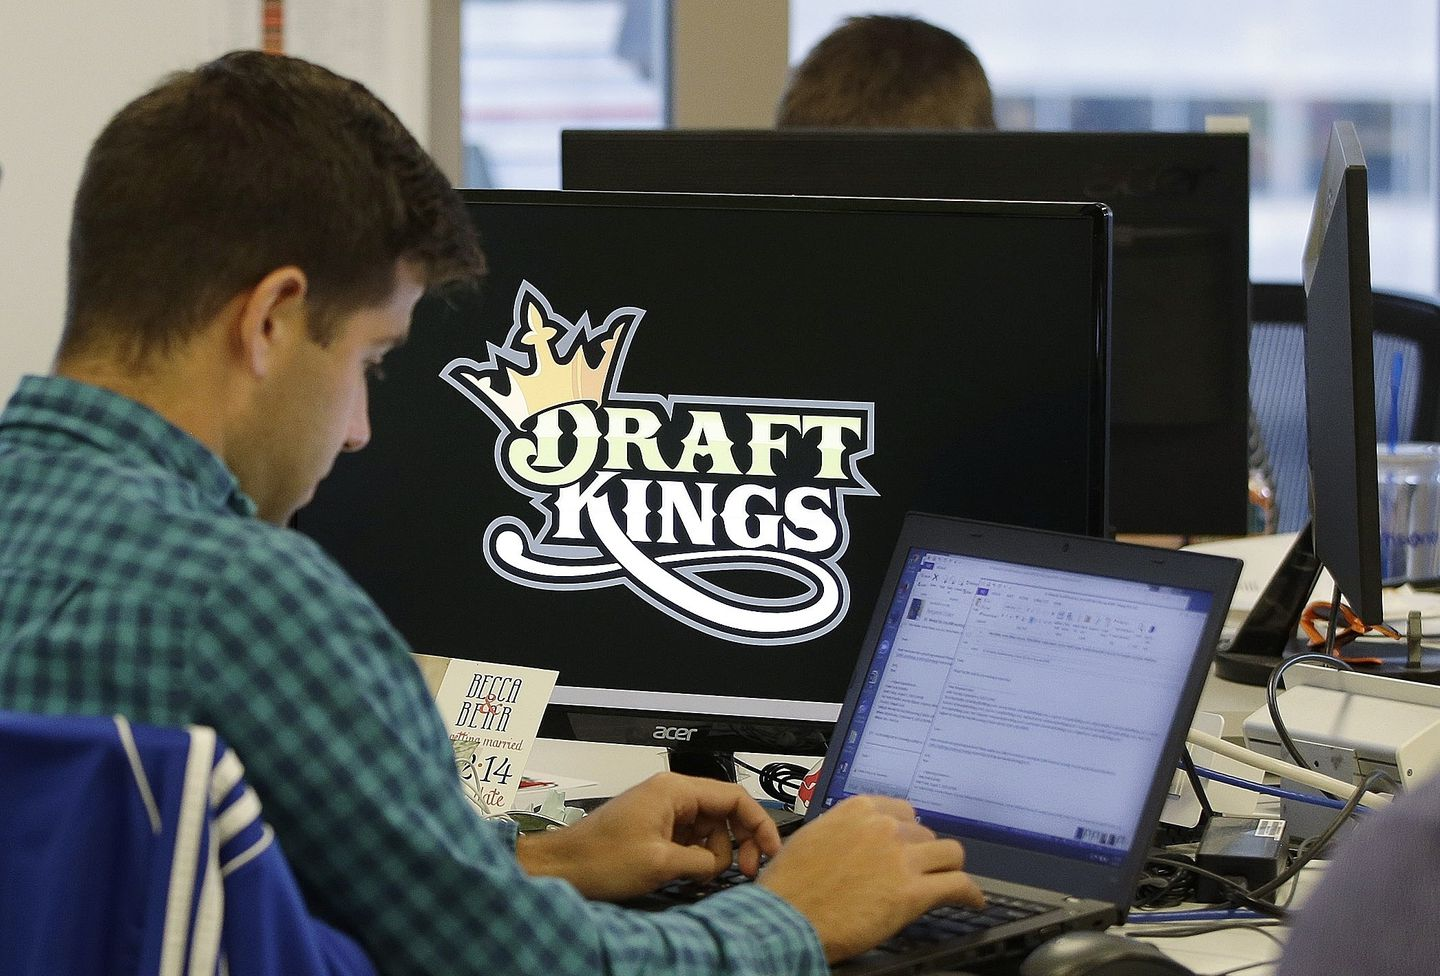 DraftKings Set Scene For New Hampshire Sports Wagering